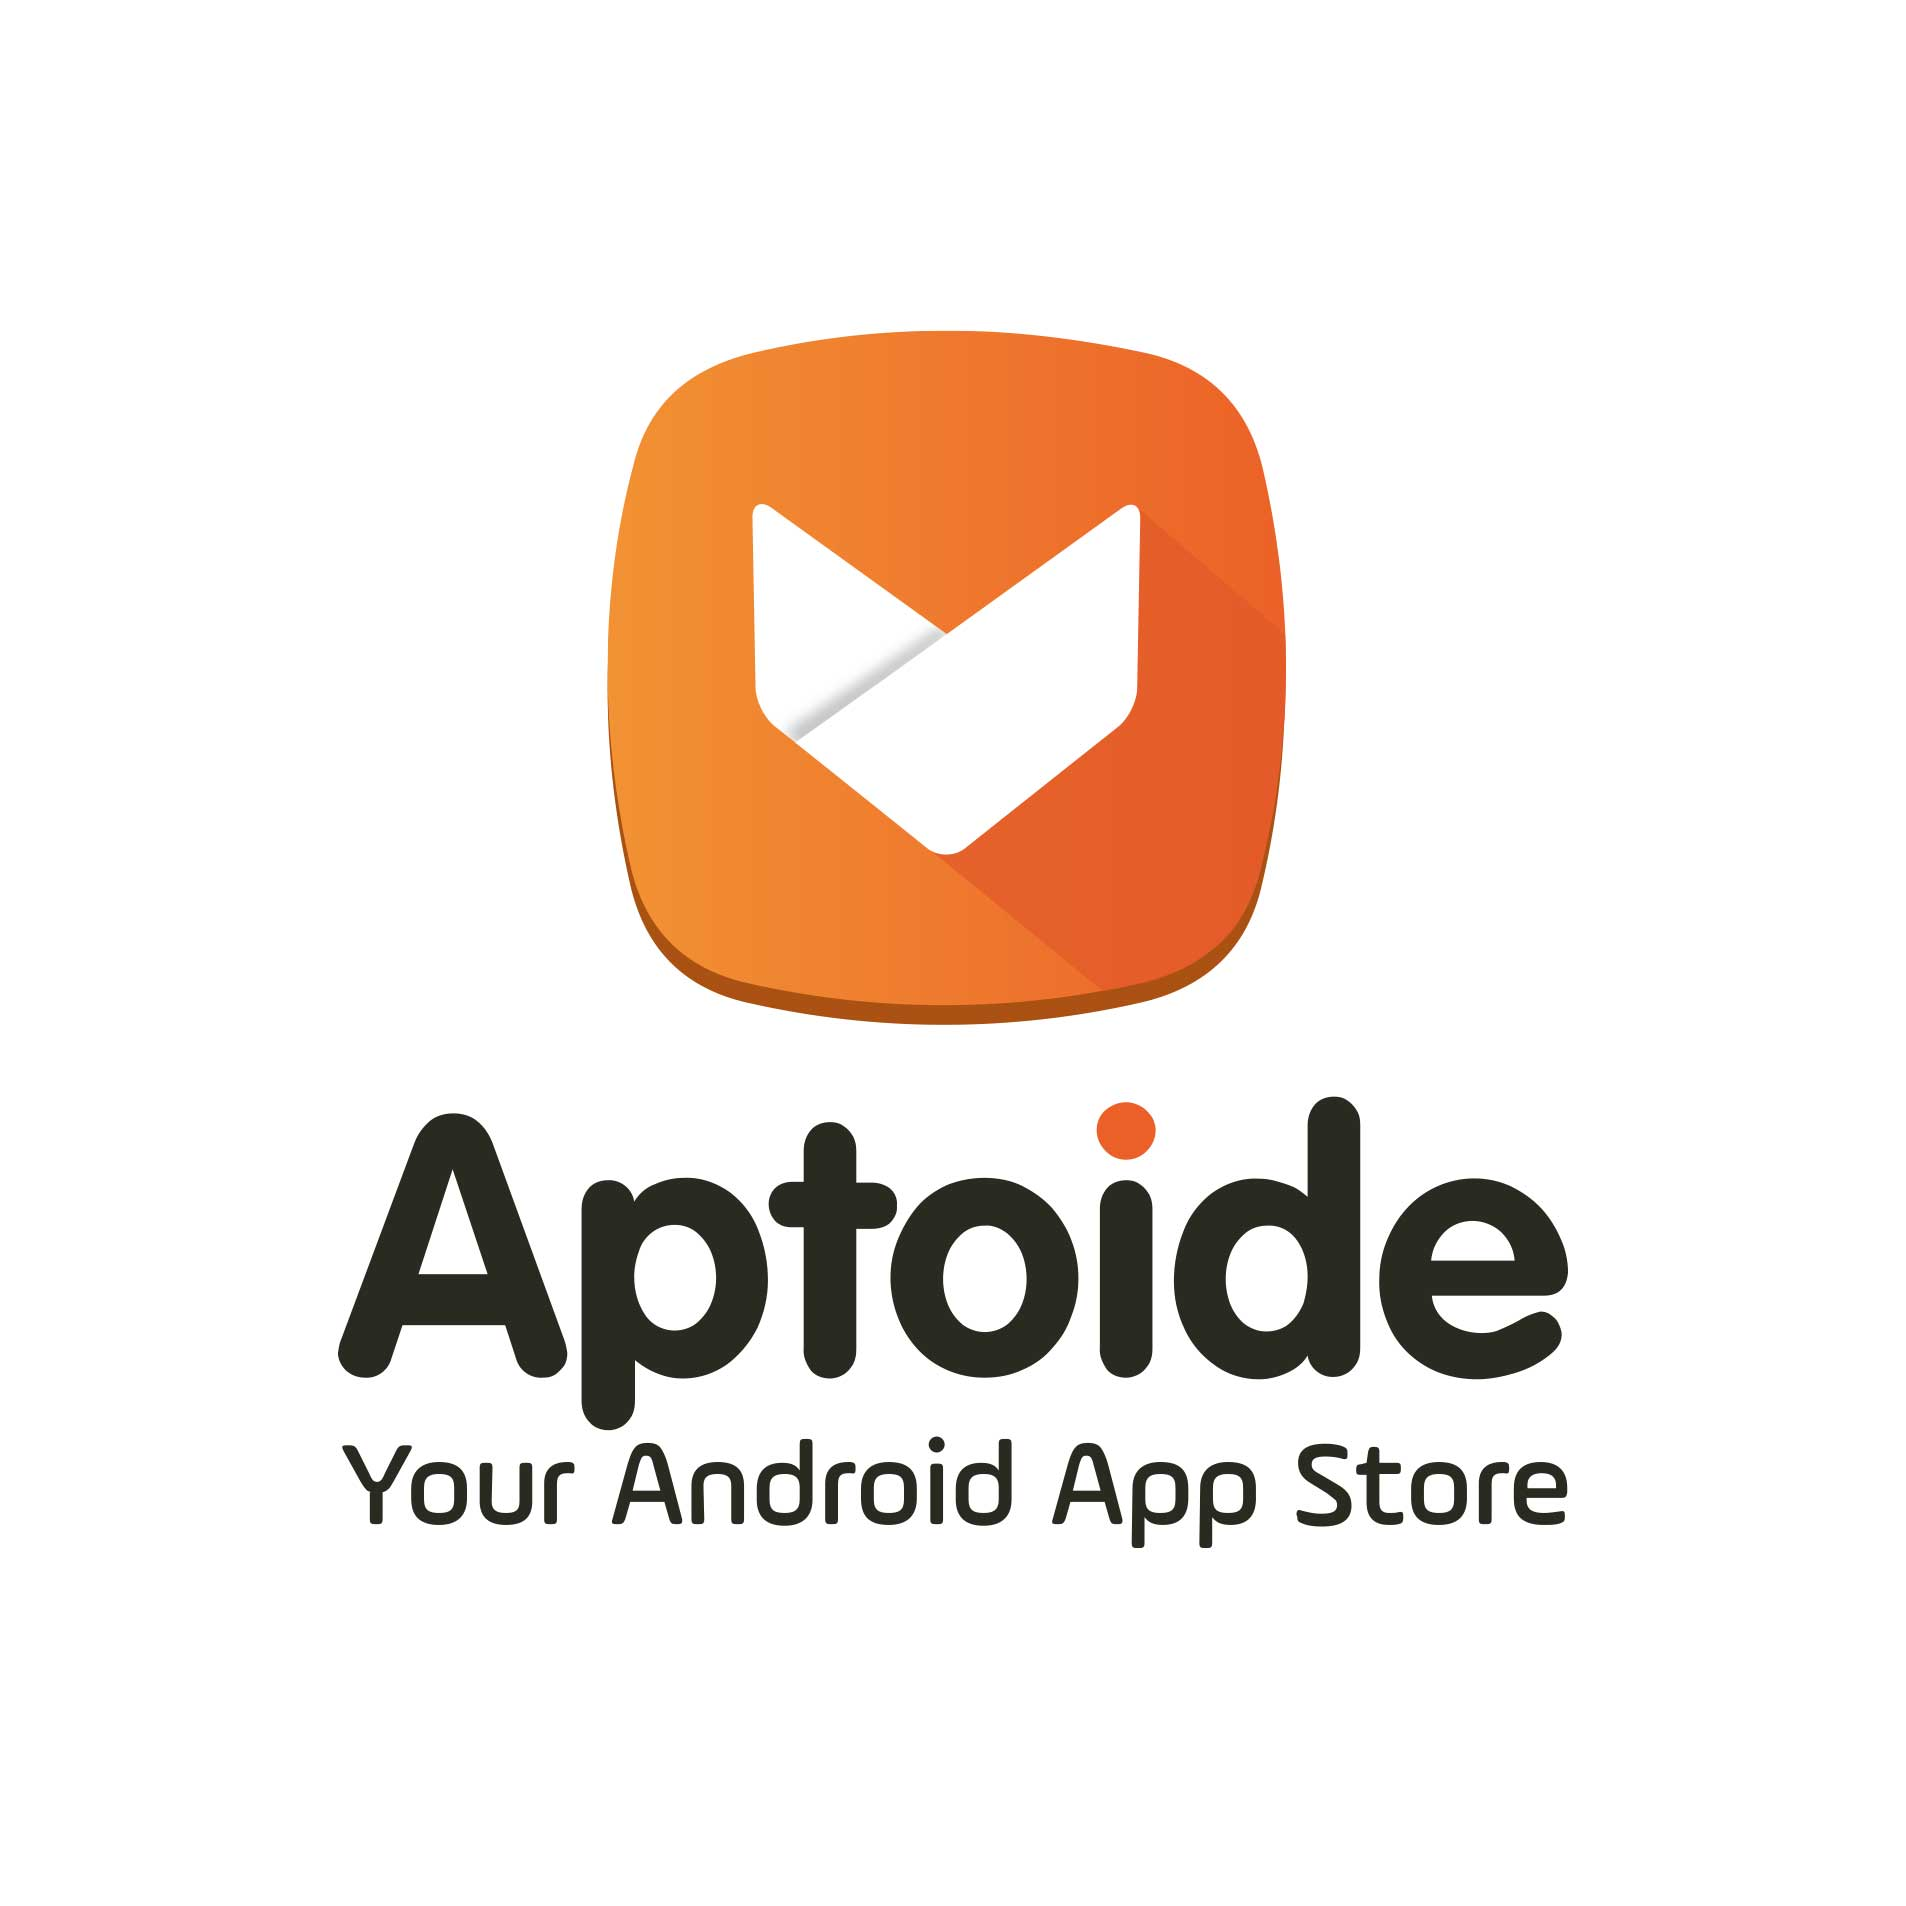 Startups come to the techcrunch barcelona meet greet during mwc drinks will be sponsored by aptoide venue kindly provided by cloud coworking m4hsunfo